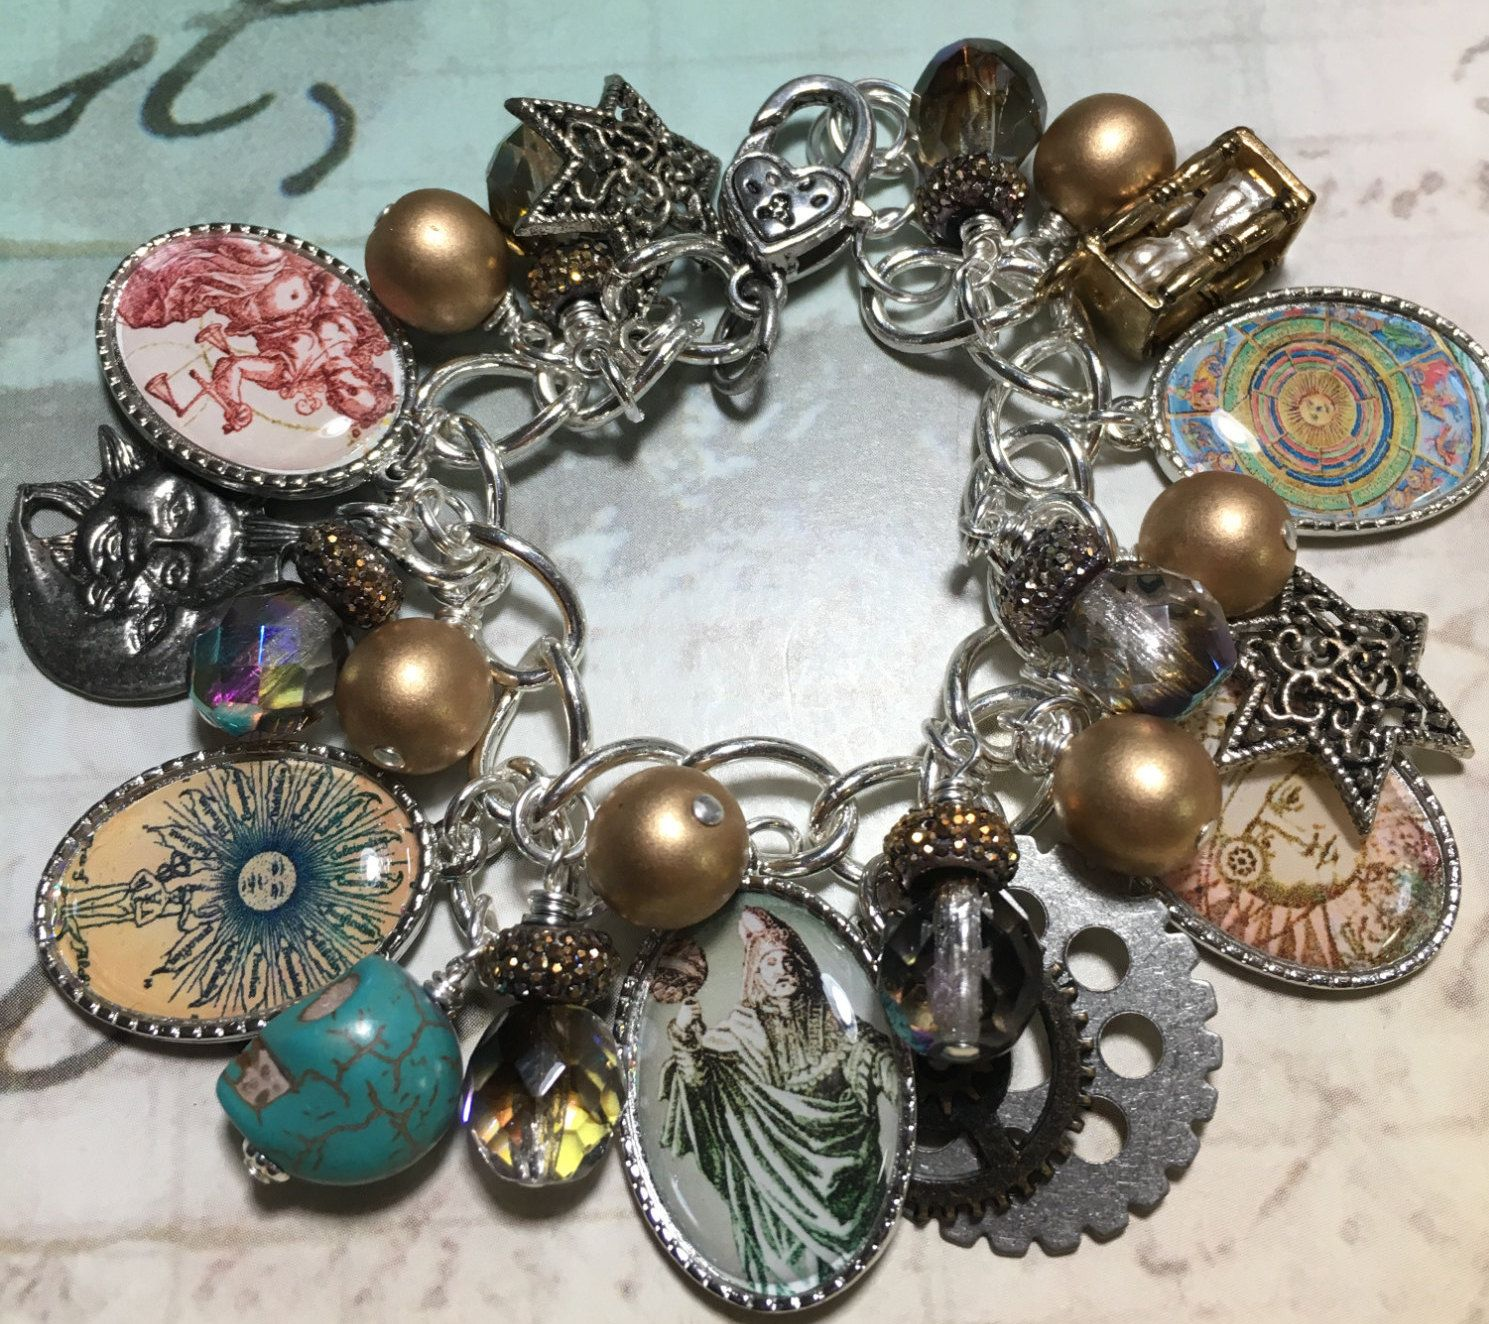 Alchemy,  altered art Charm bracelet, altered , jewelry, handmade, One of a kind by Bostoncharm on Etsy